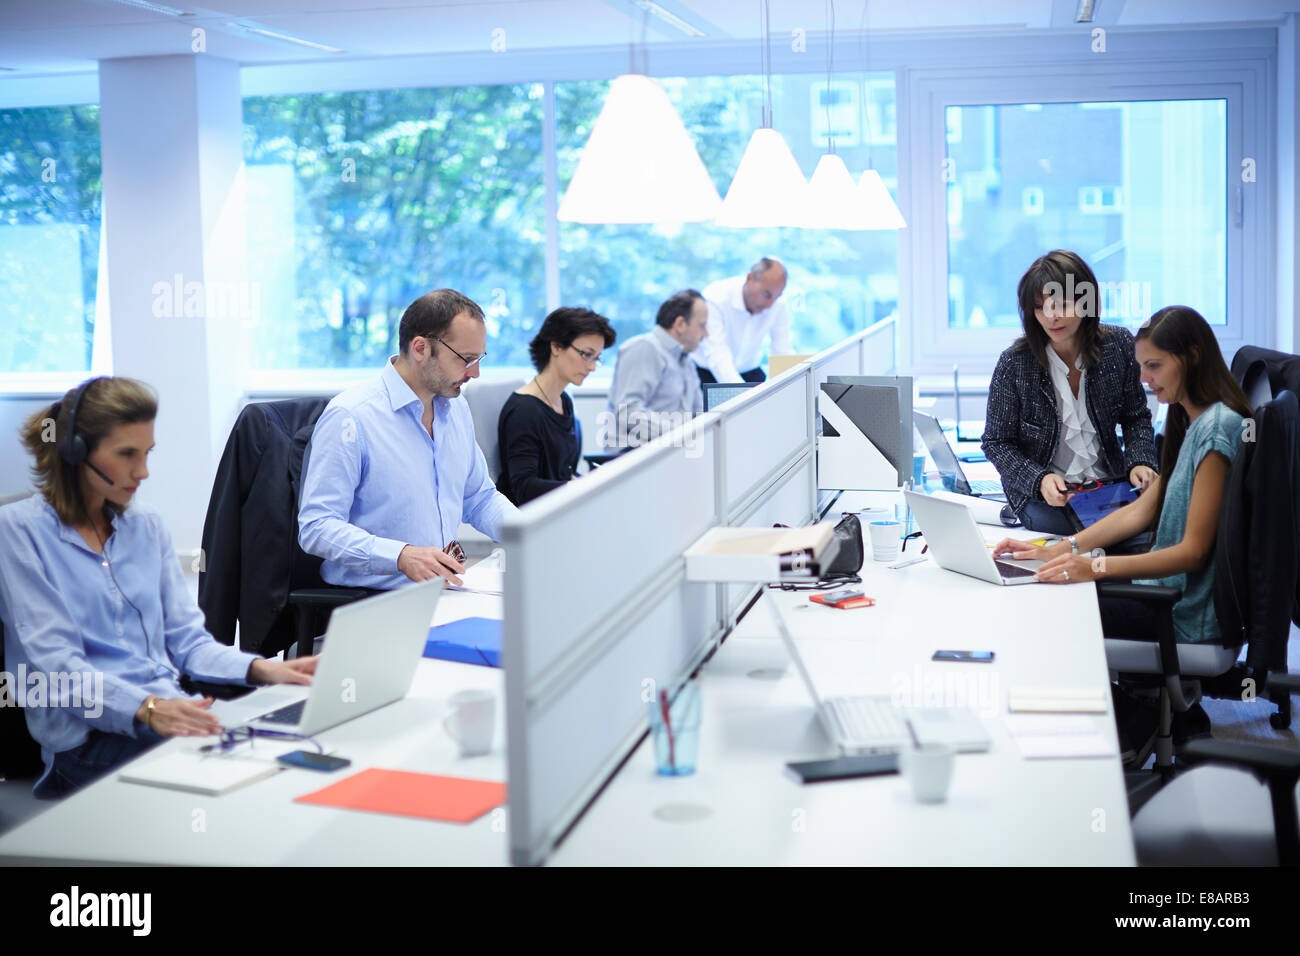 Business team at their desks in busy office - Stock Image